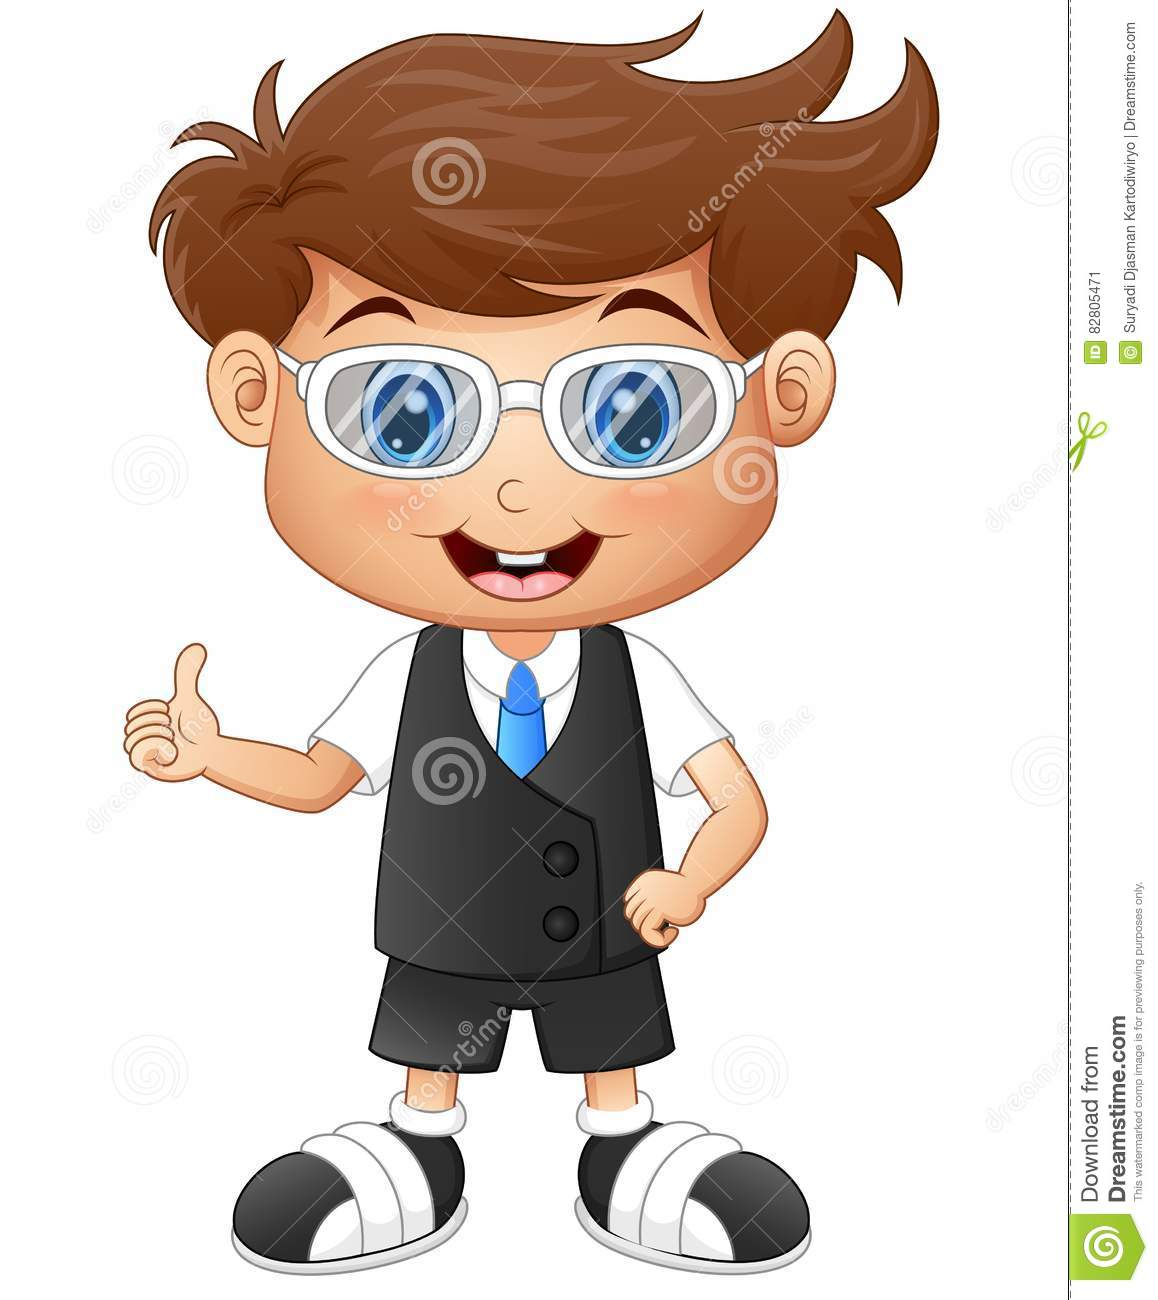 Little boy giving thumbs up clipart clipart free library Little Boy Wearing Glasses Giving Thumbs Up Stock Vector - Image ... clipart free library